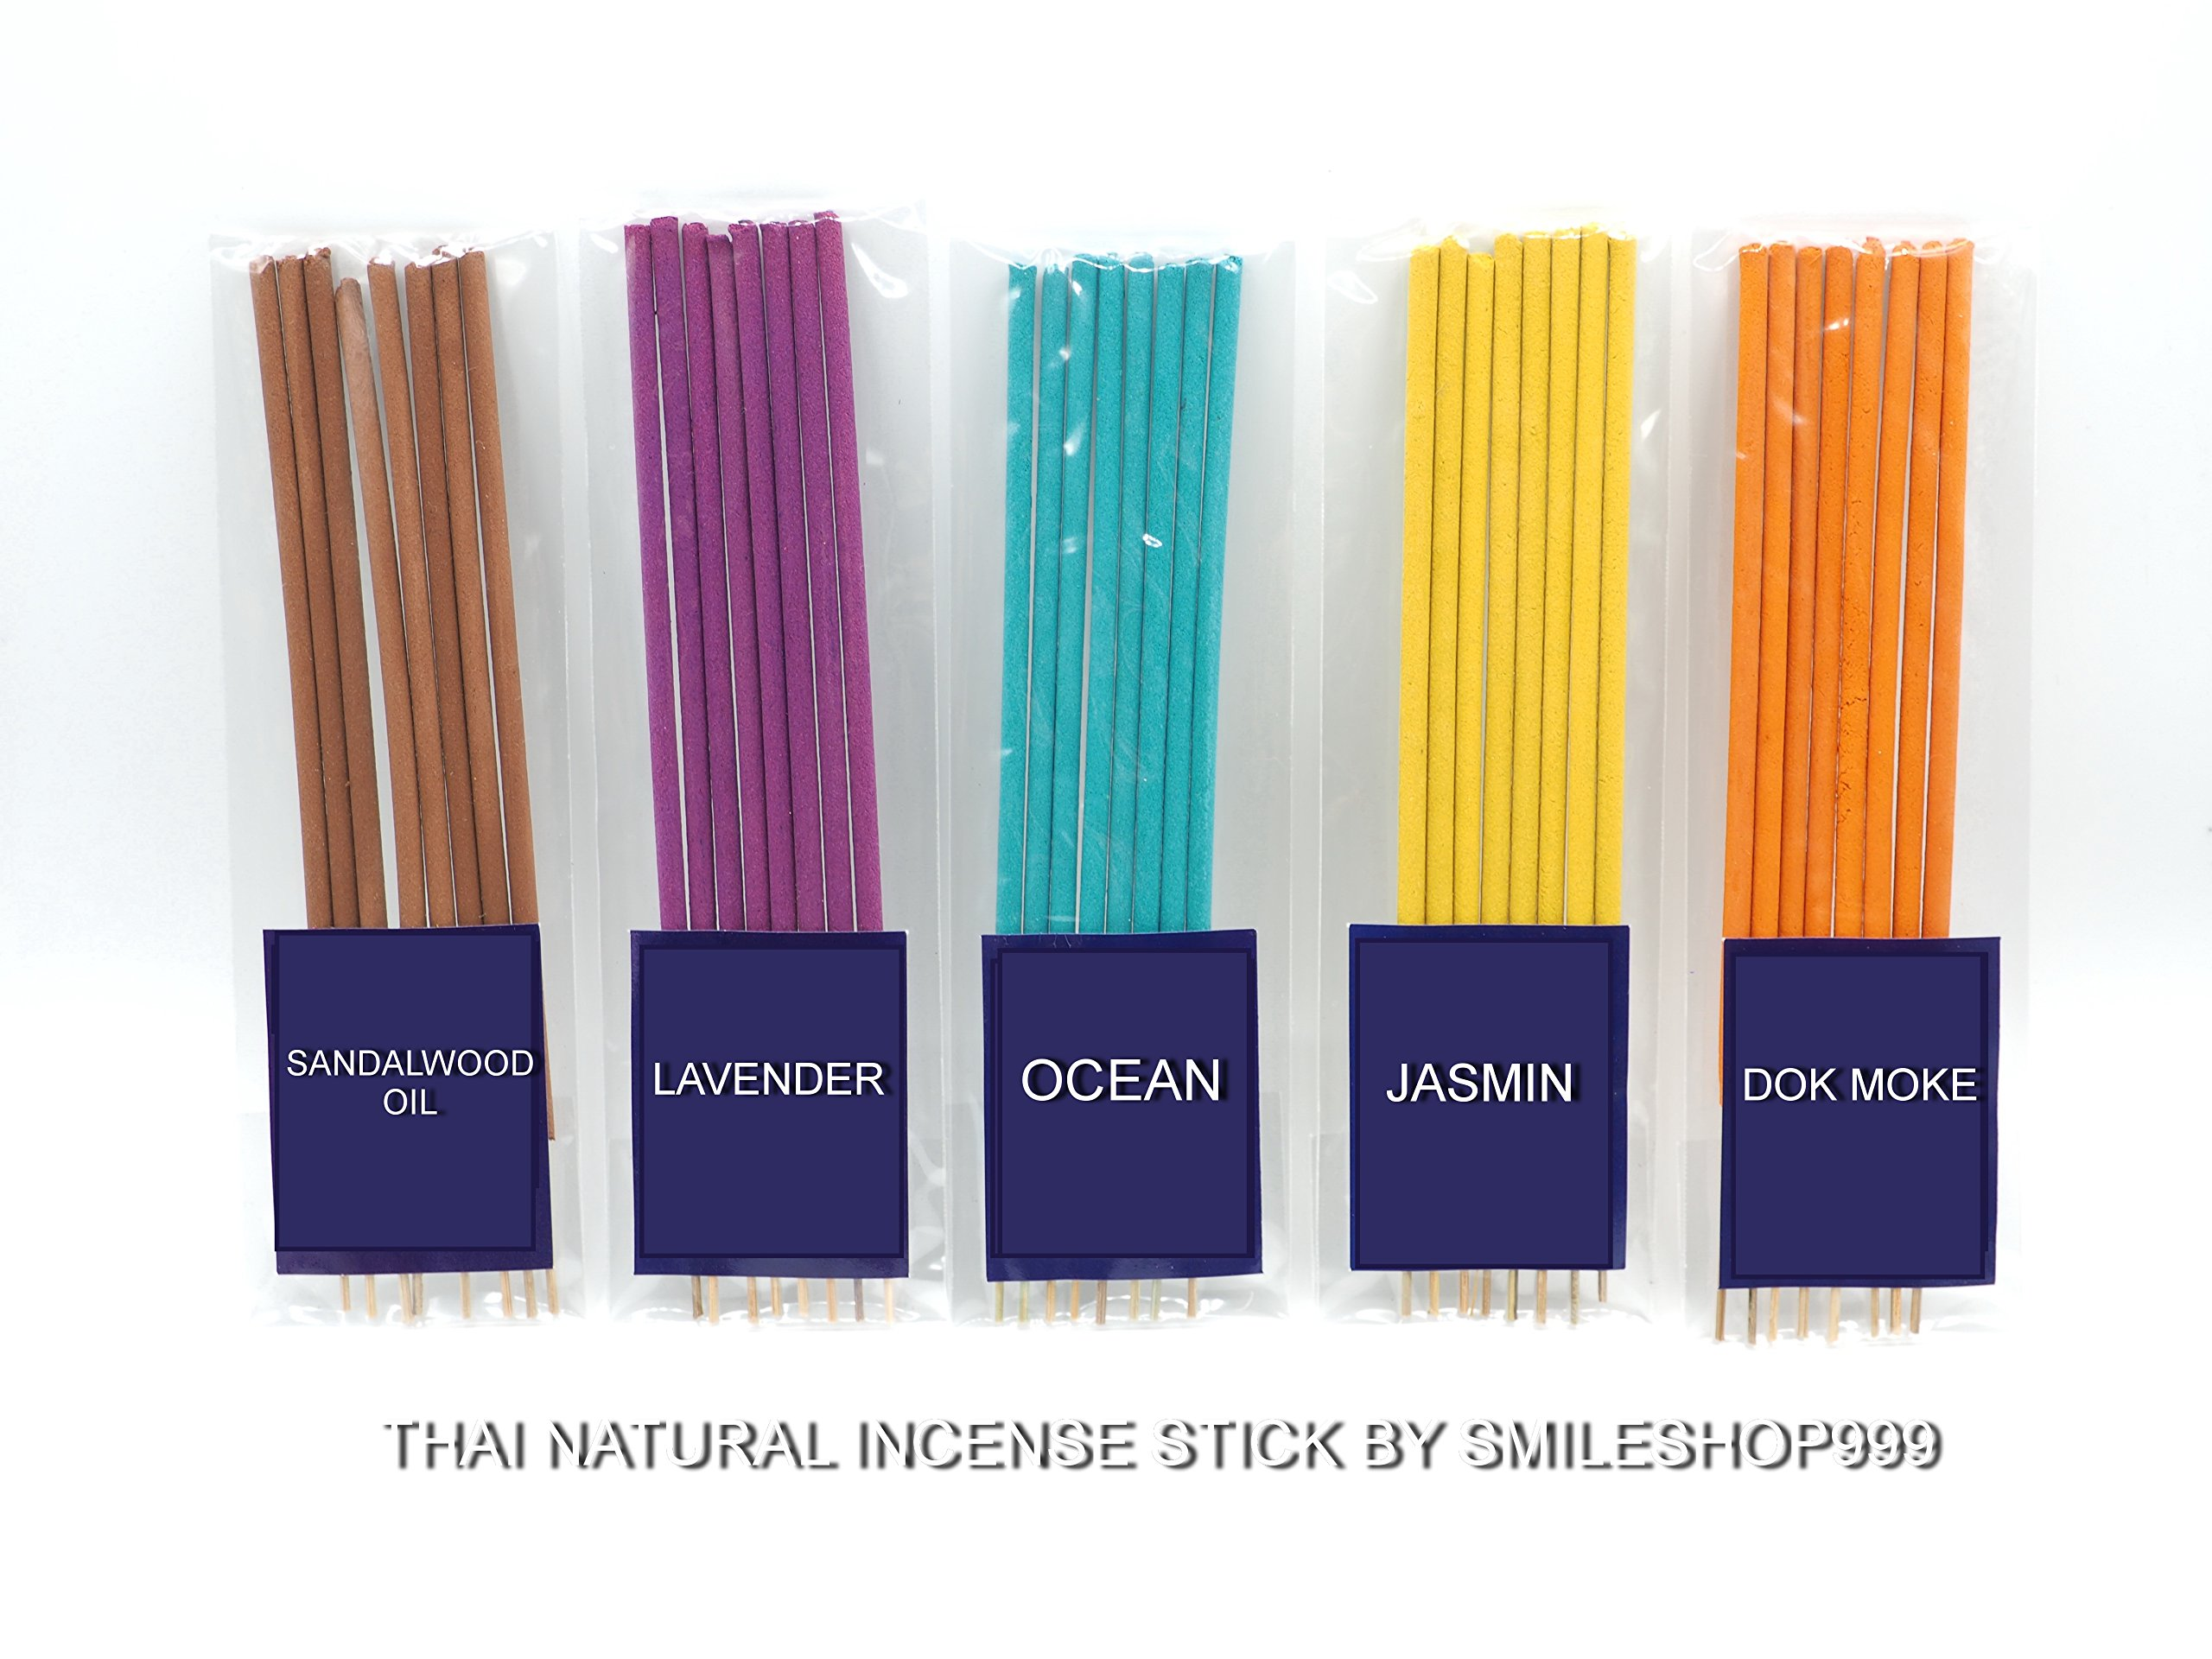 Thai Incense Sticks with 10 Diverse Aromatic Smell 100% Natural with Jasmin DokMoke Sandalwood Lavender Ocean Rose Orchid Butterfly Pea Fangipani Coconut Fee shipping by smileshop999